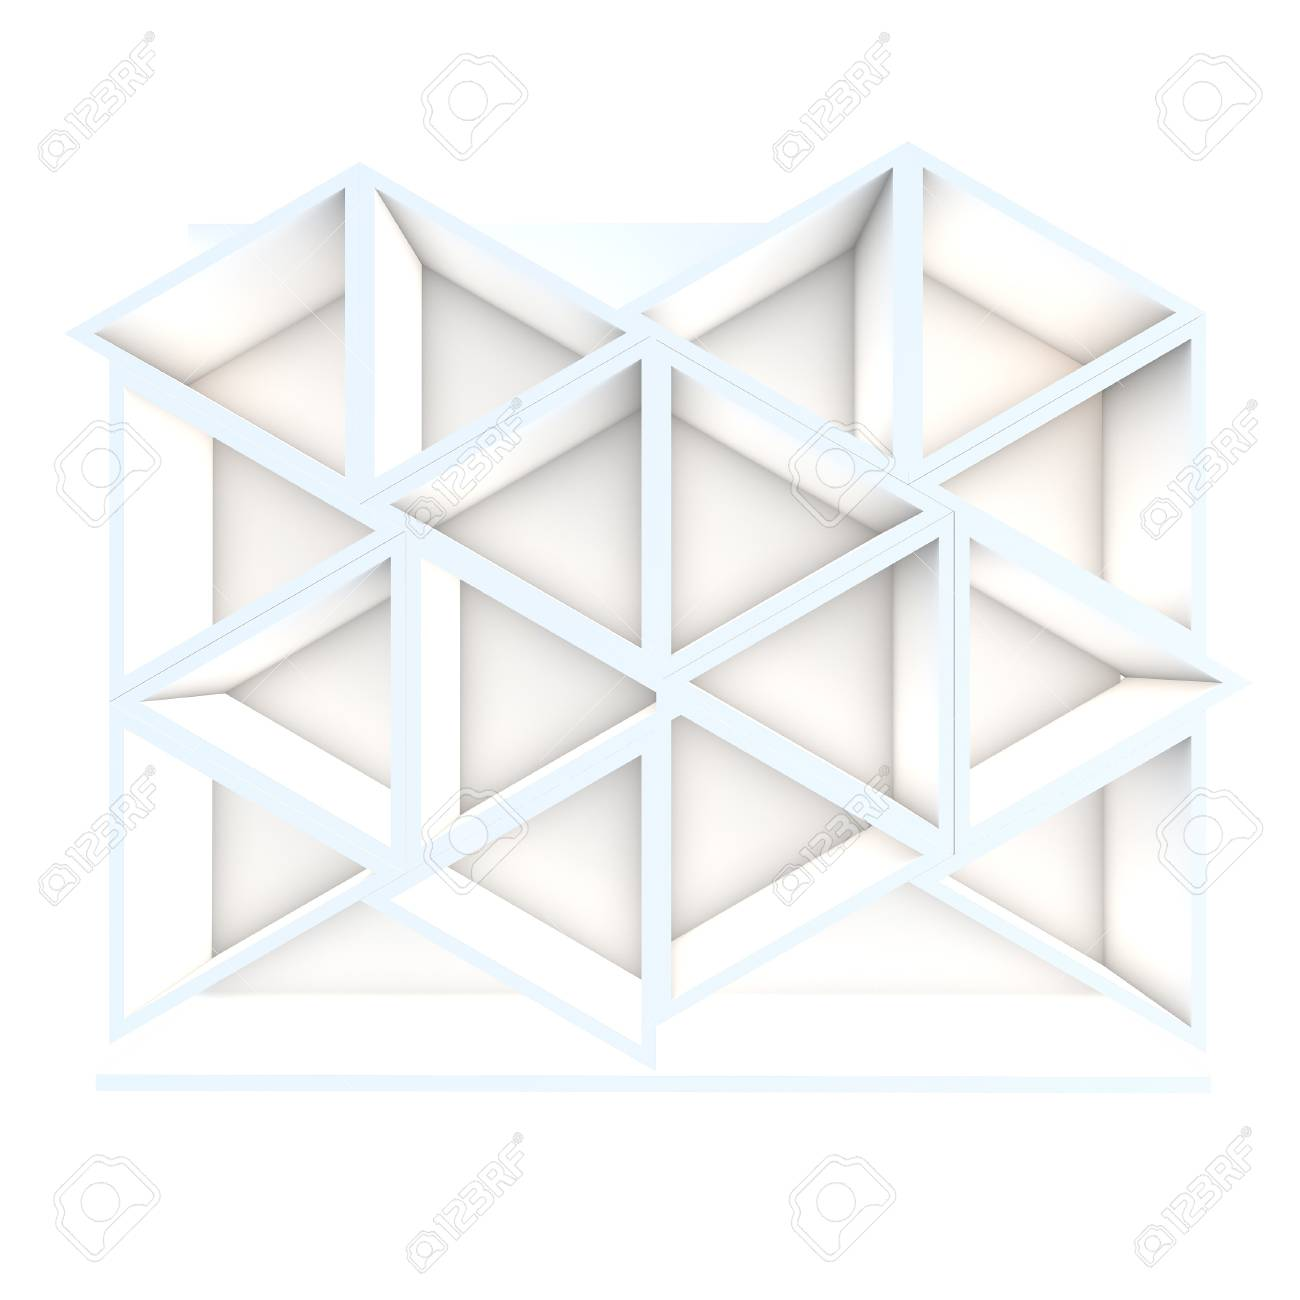 Color white triangle shelf design with white background Stock Photo - 16849553